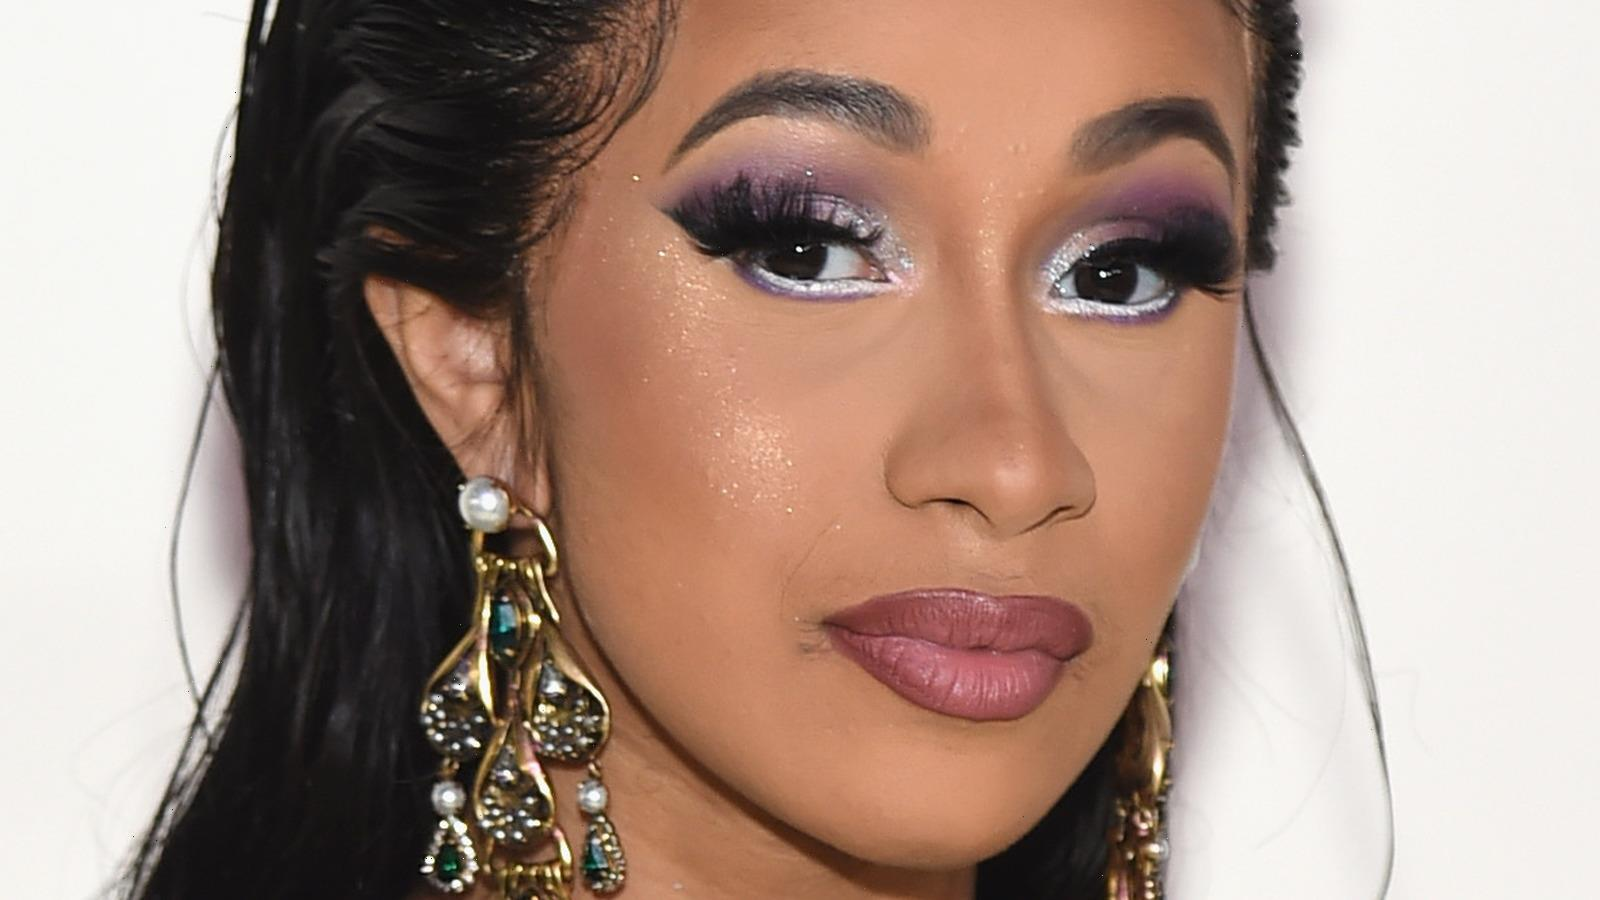 Heres What Cardi B Almost Got Tattooed On Her Face